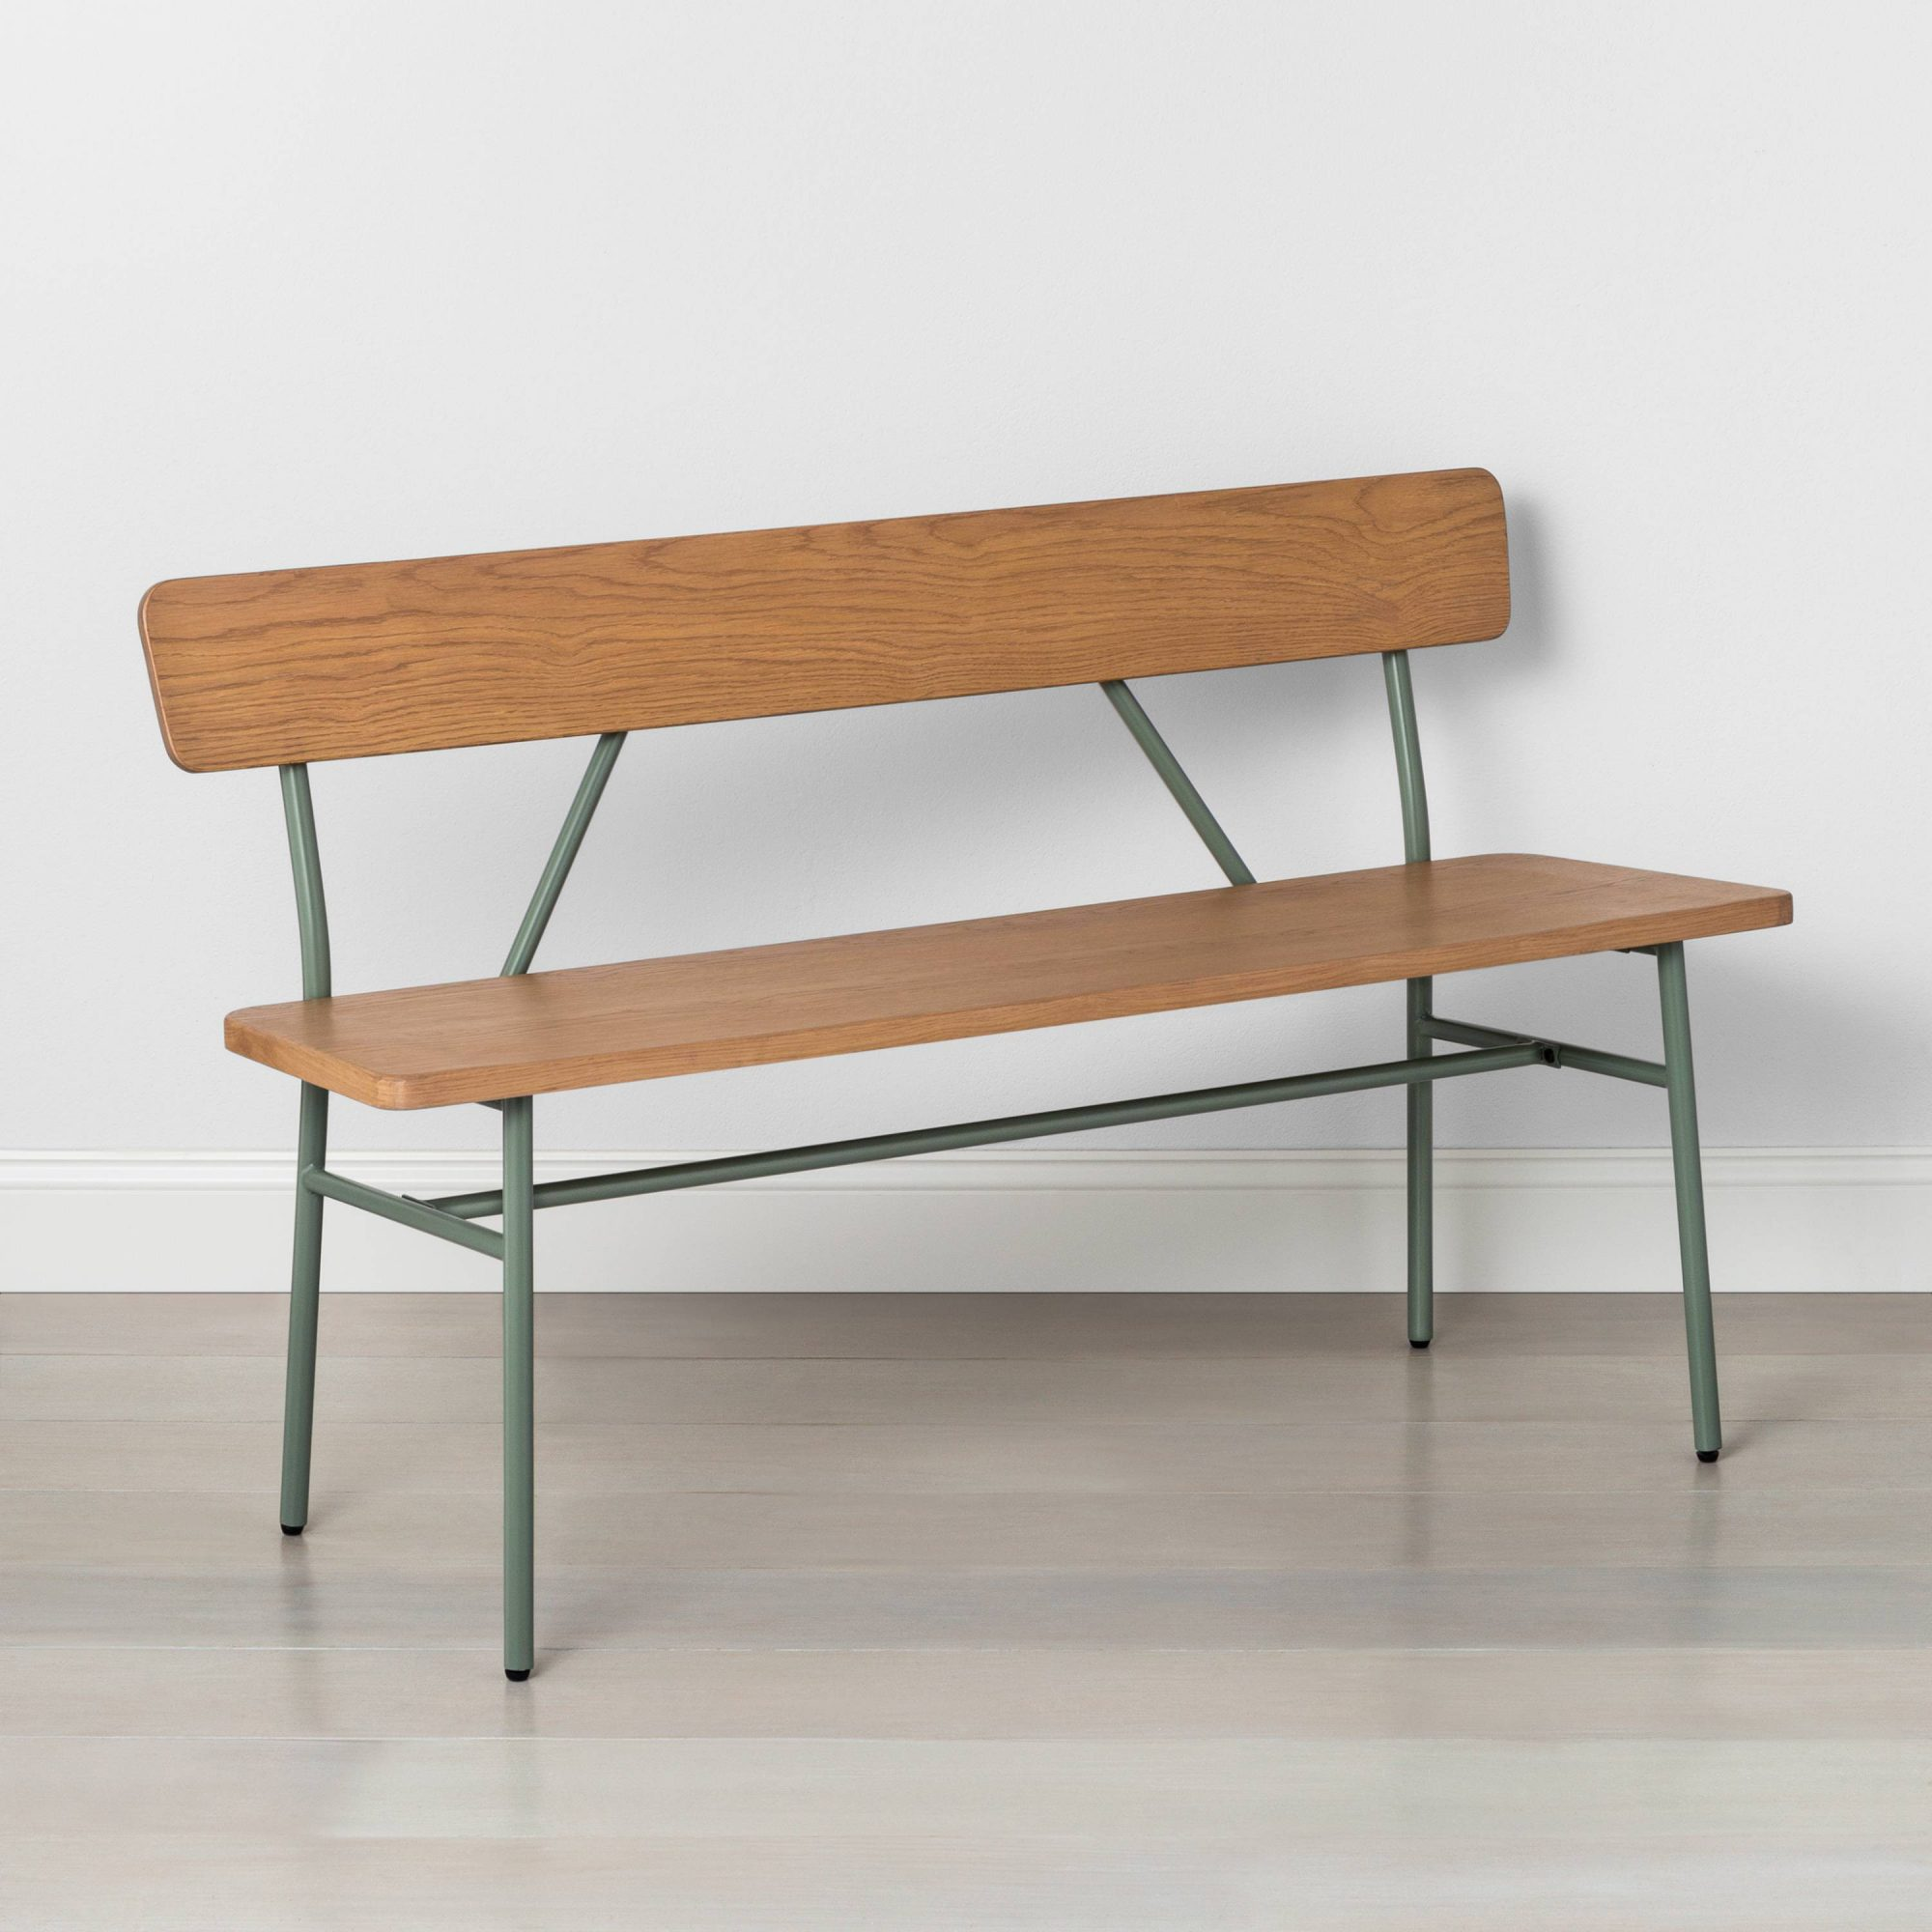 hearthhand-metal-wood-accent-bench-green.jpg